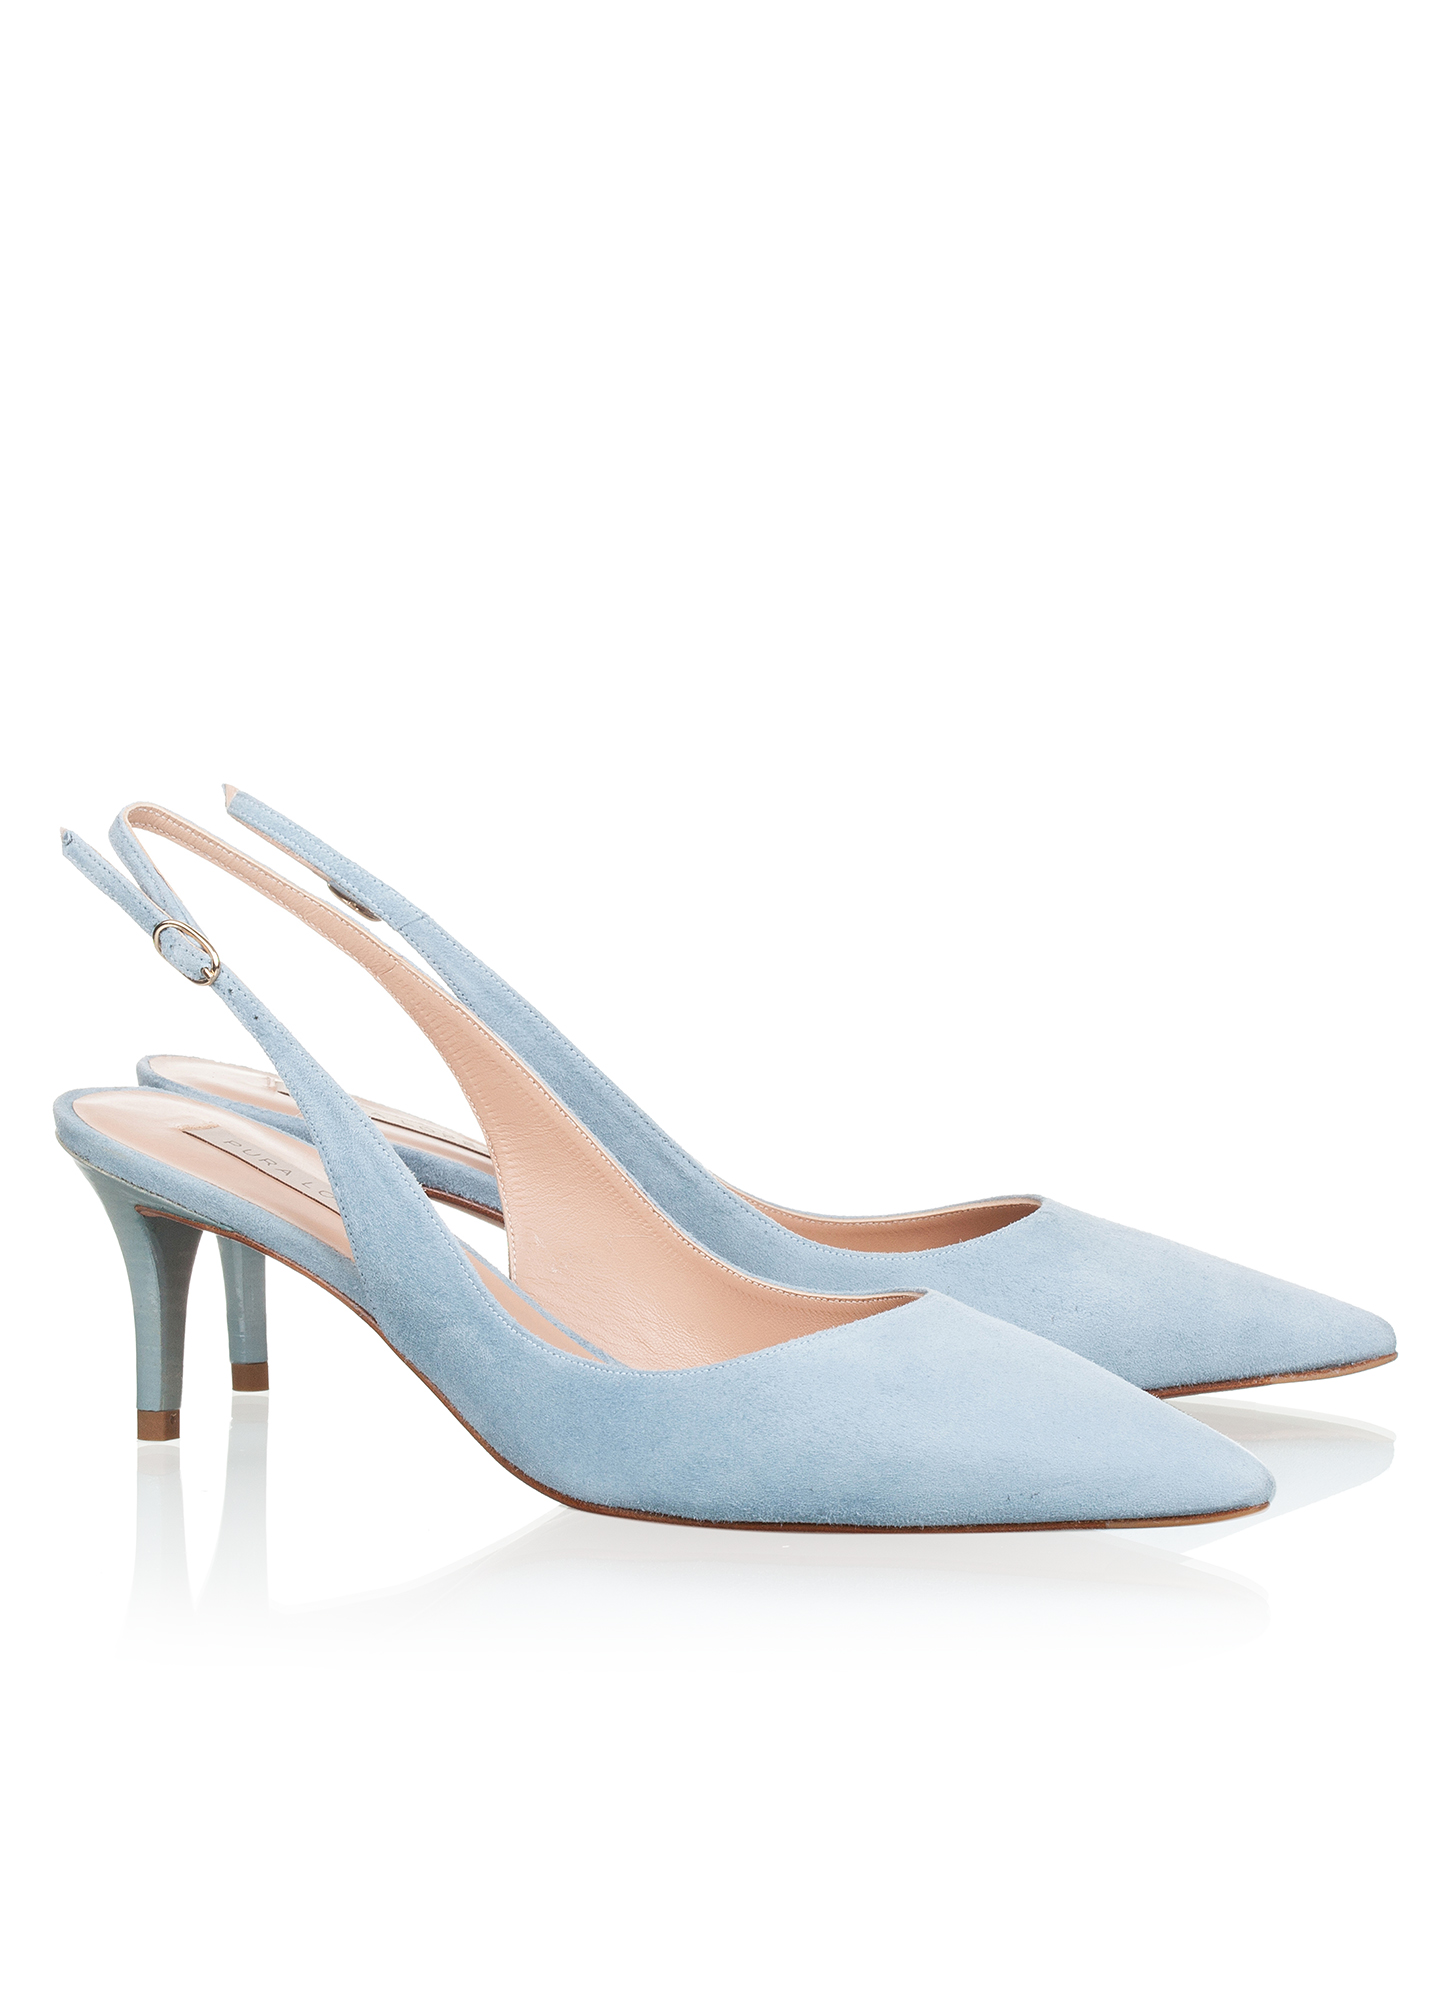 Zapatos Salon Azules Online Slingback Mid Heel Pumps In Blue Suede Online Store Pura